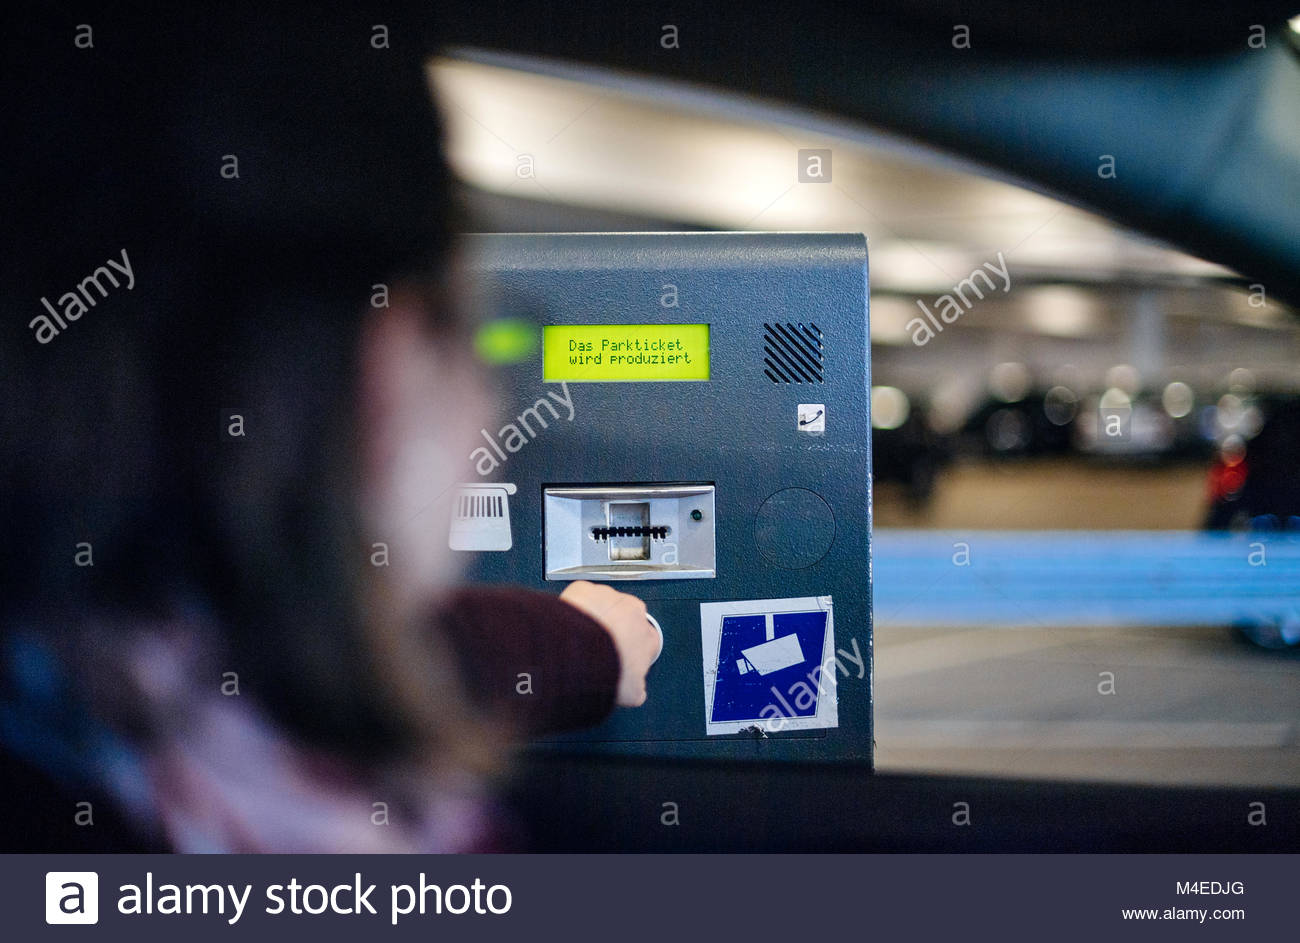 Woman paying ticket parking time space digital display - Stock Image